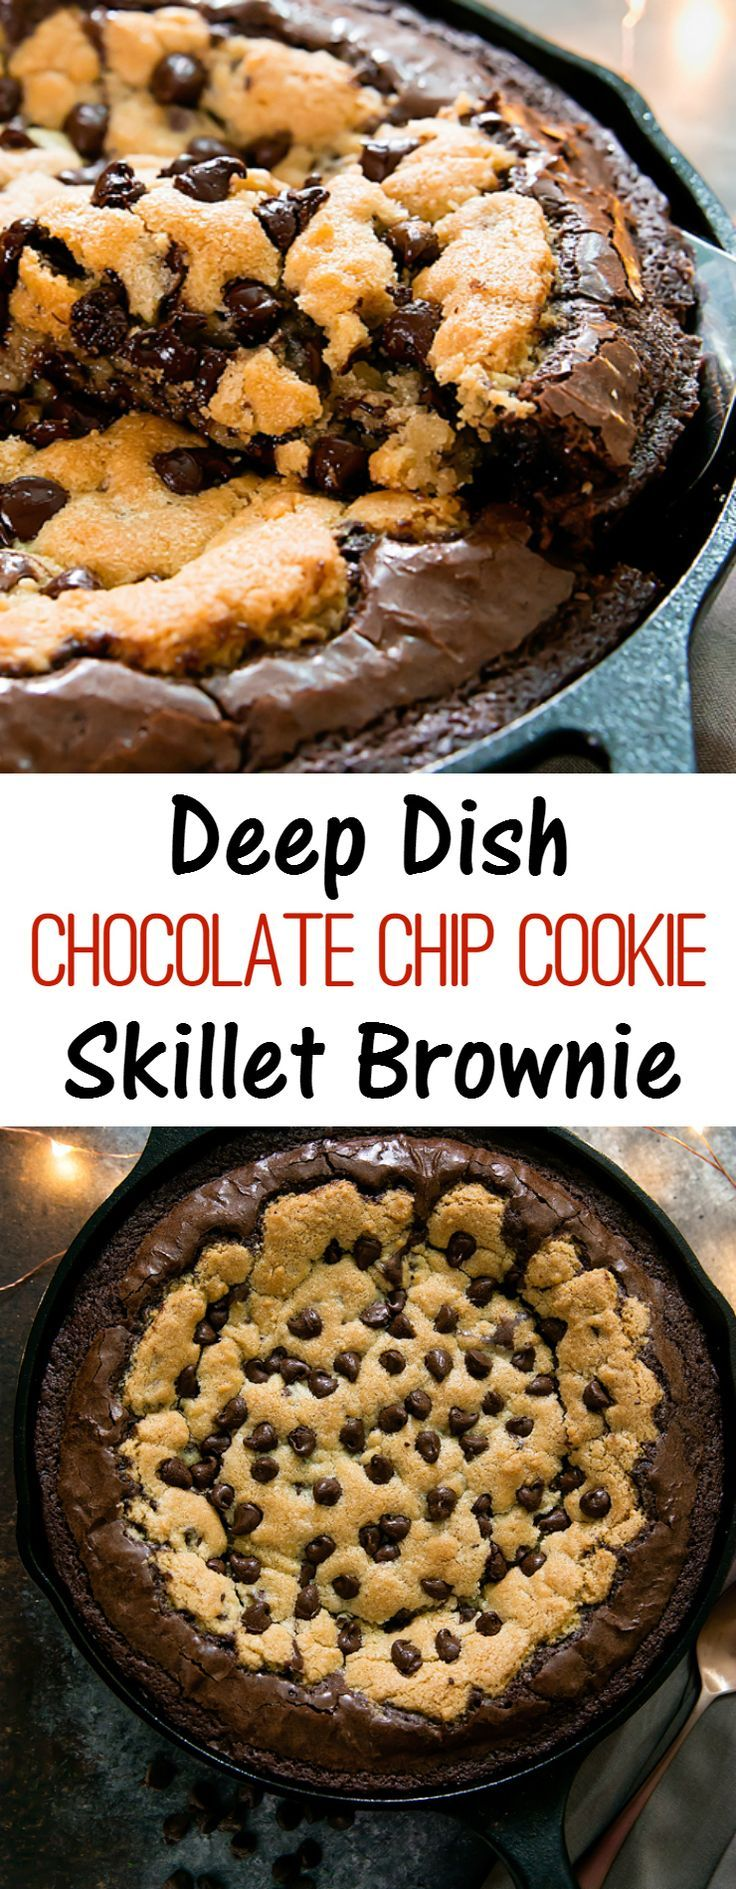 Deep Dish Chocolate Chip Cookie Skillet Brownie. Combining cookies and brownies into one decadent dessert, baked in a cast iron skillet. Made with /pillsburybaking/ mixes! #spon